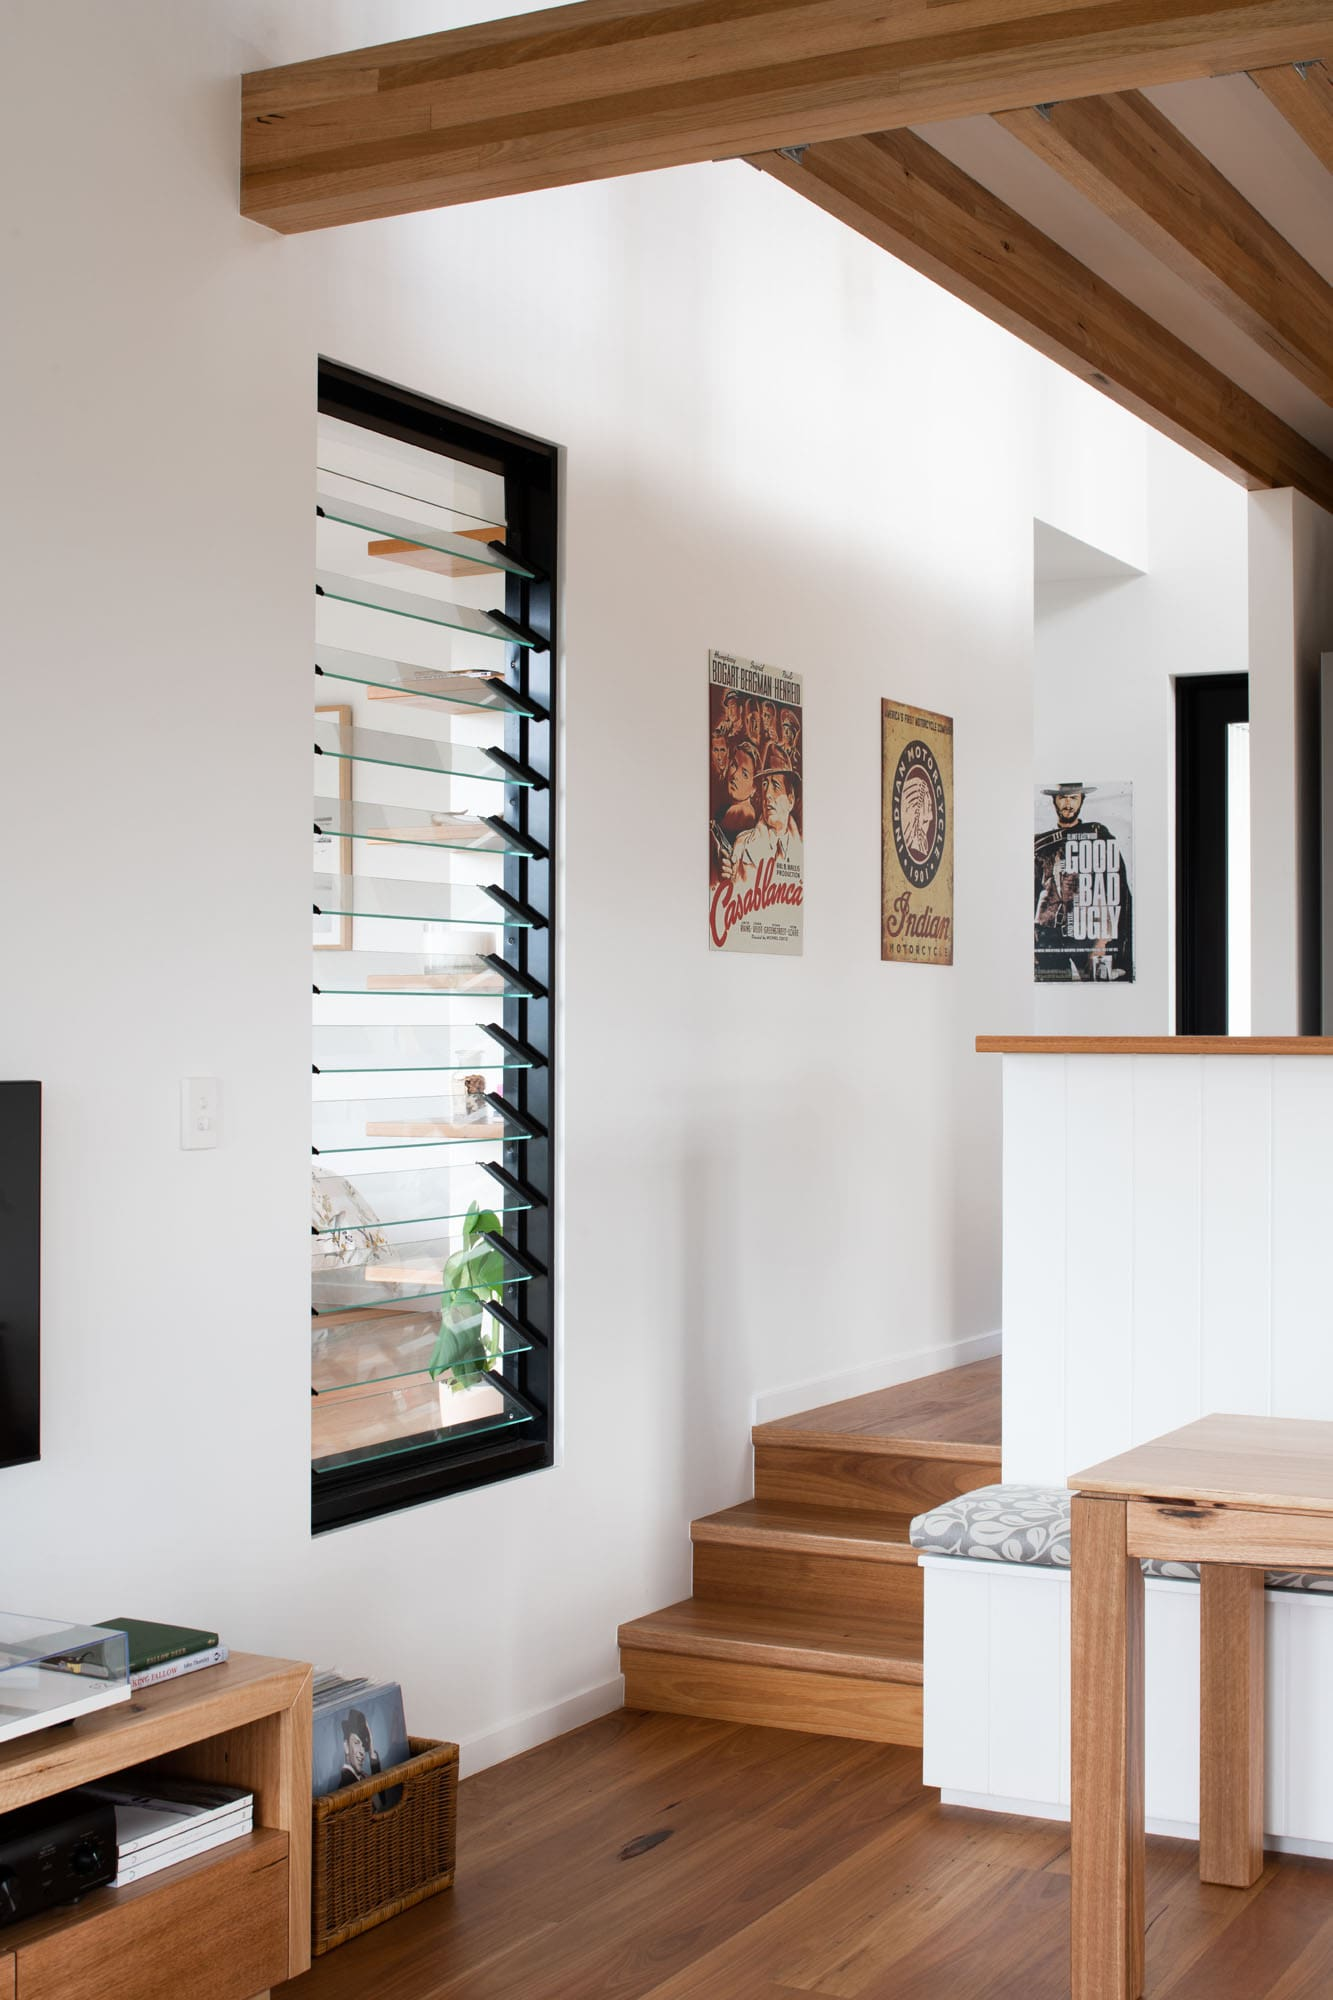 Louvered window and timber flooring in sustainable home